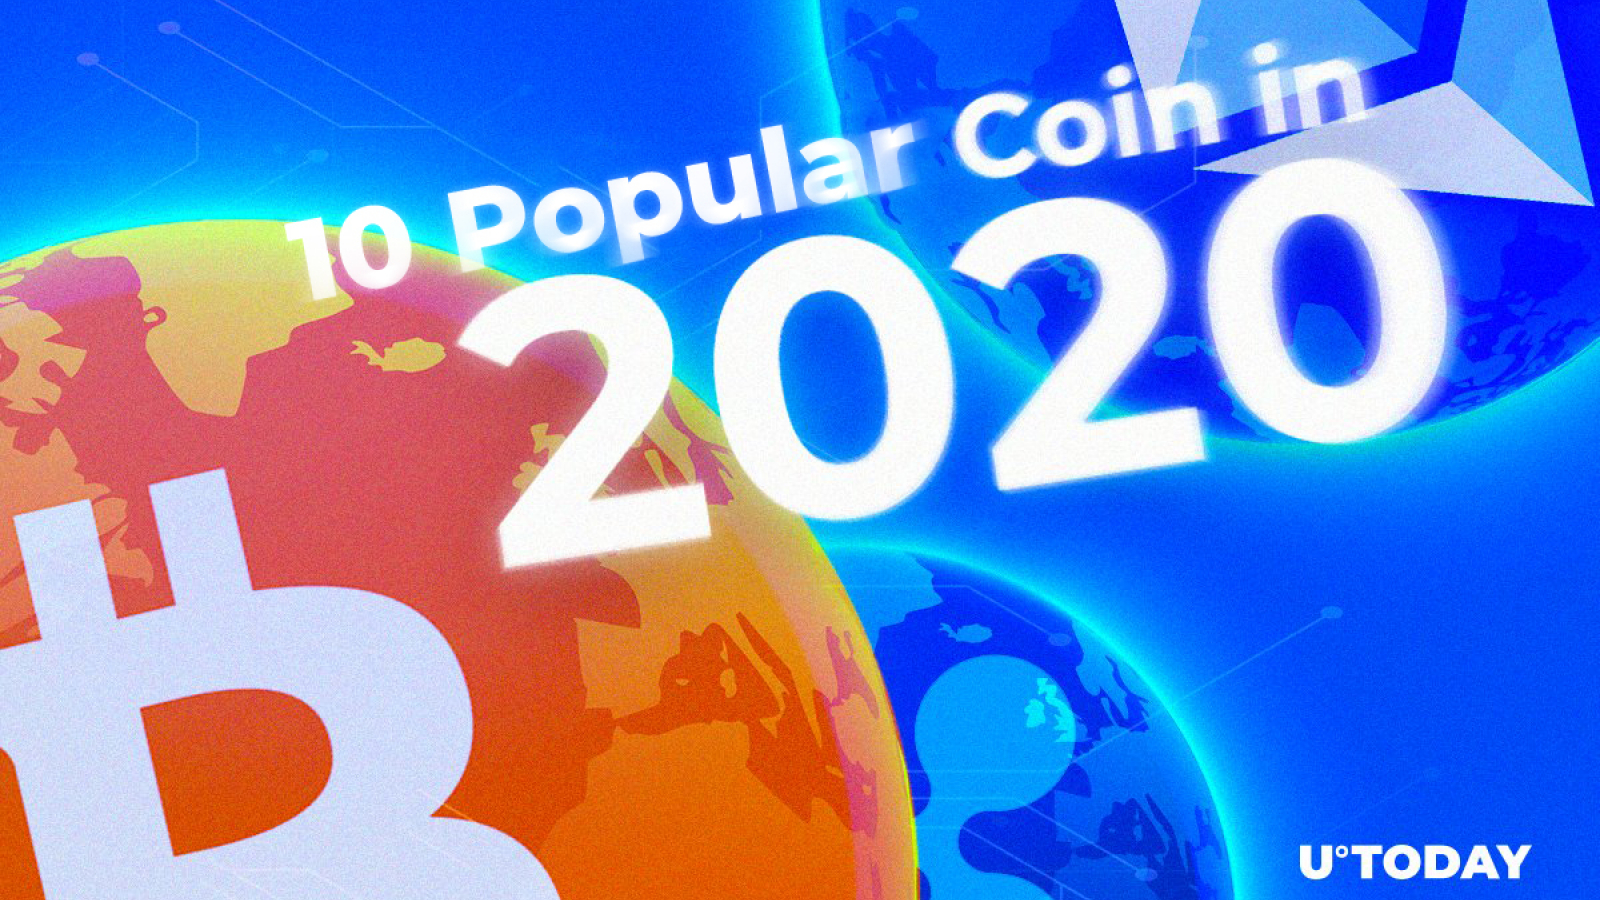 Best Coins To Mine 2020 10 Popular Coins in 2020 Forecast: How Much Might the Big